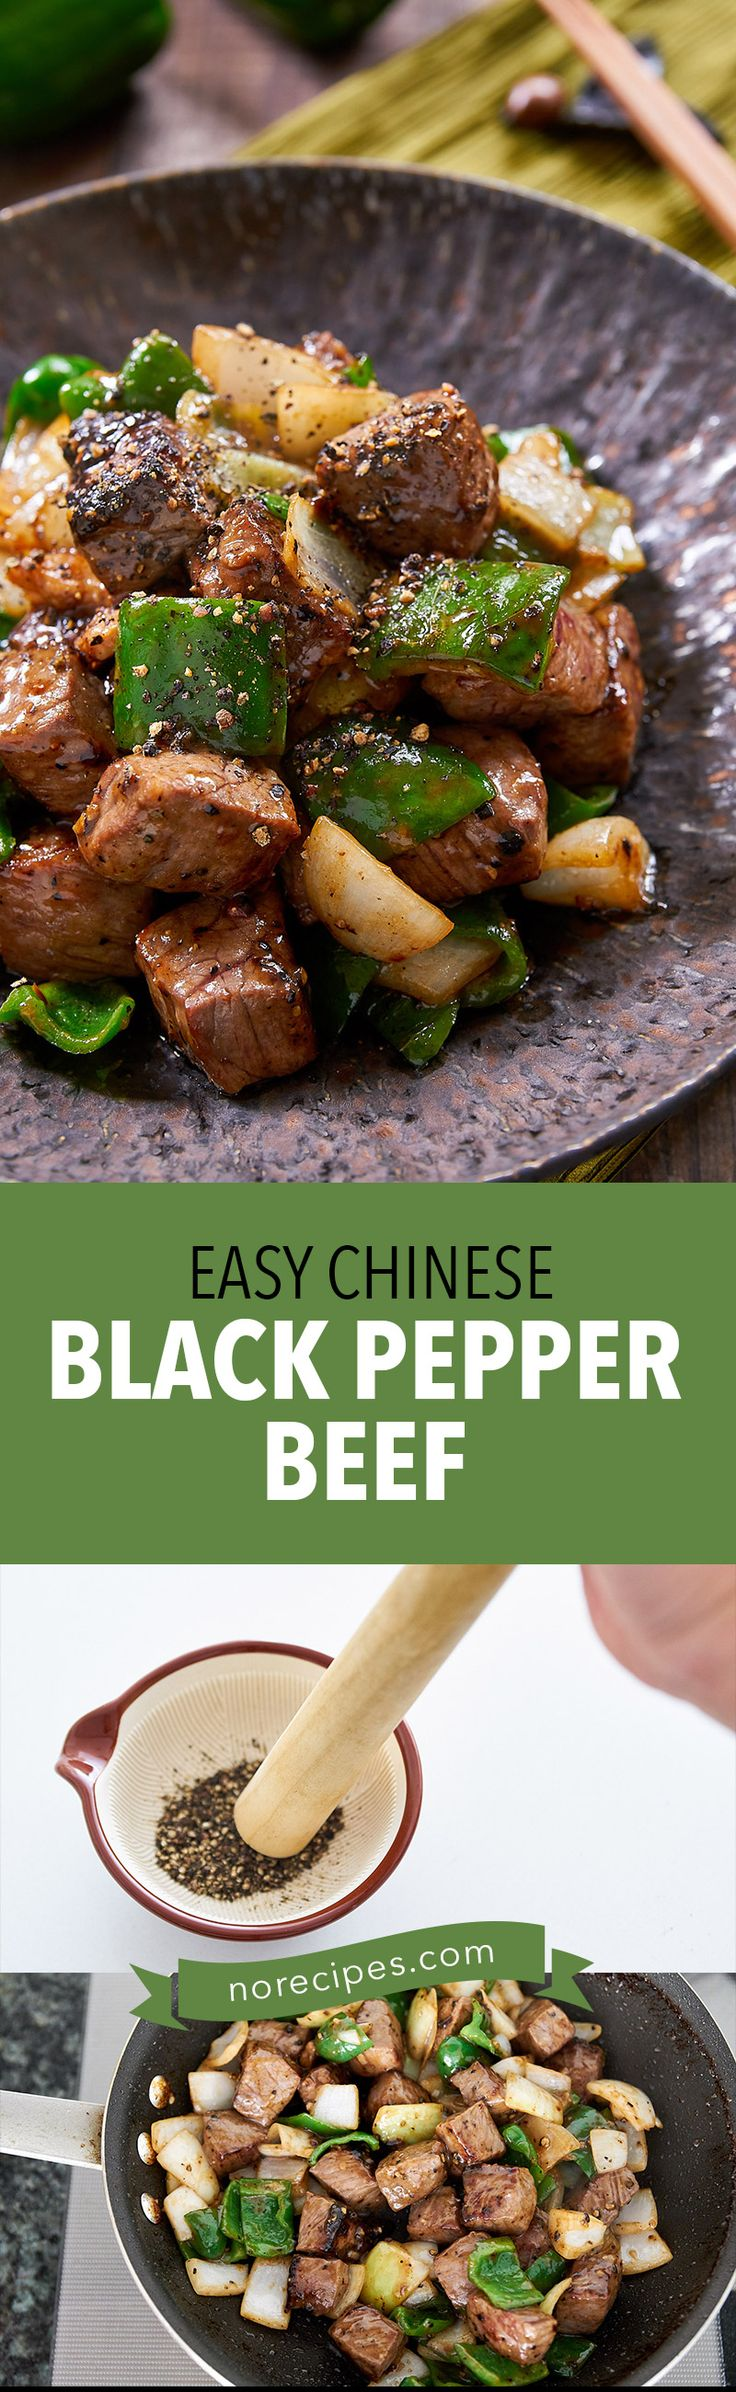 With big chunks of juicy beef stir-fried with vegetables and a savory black pepper sauce, this Black Pepper Beef recipe is easy and delicious.